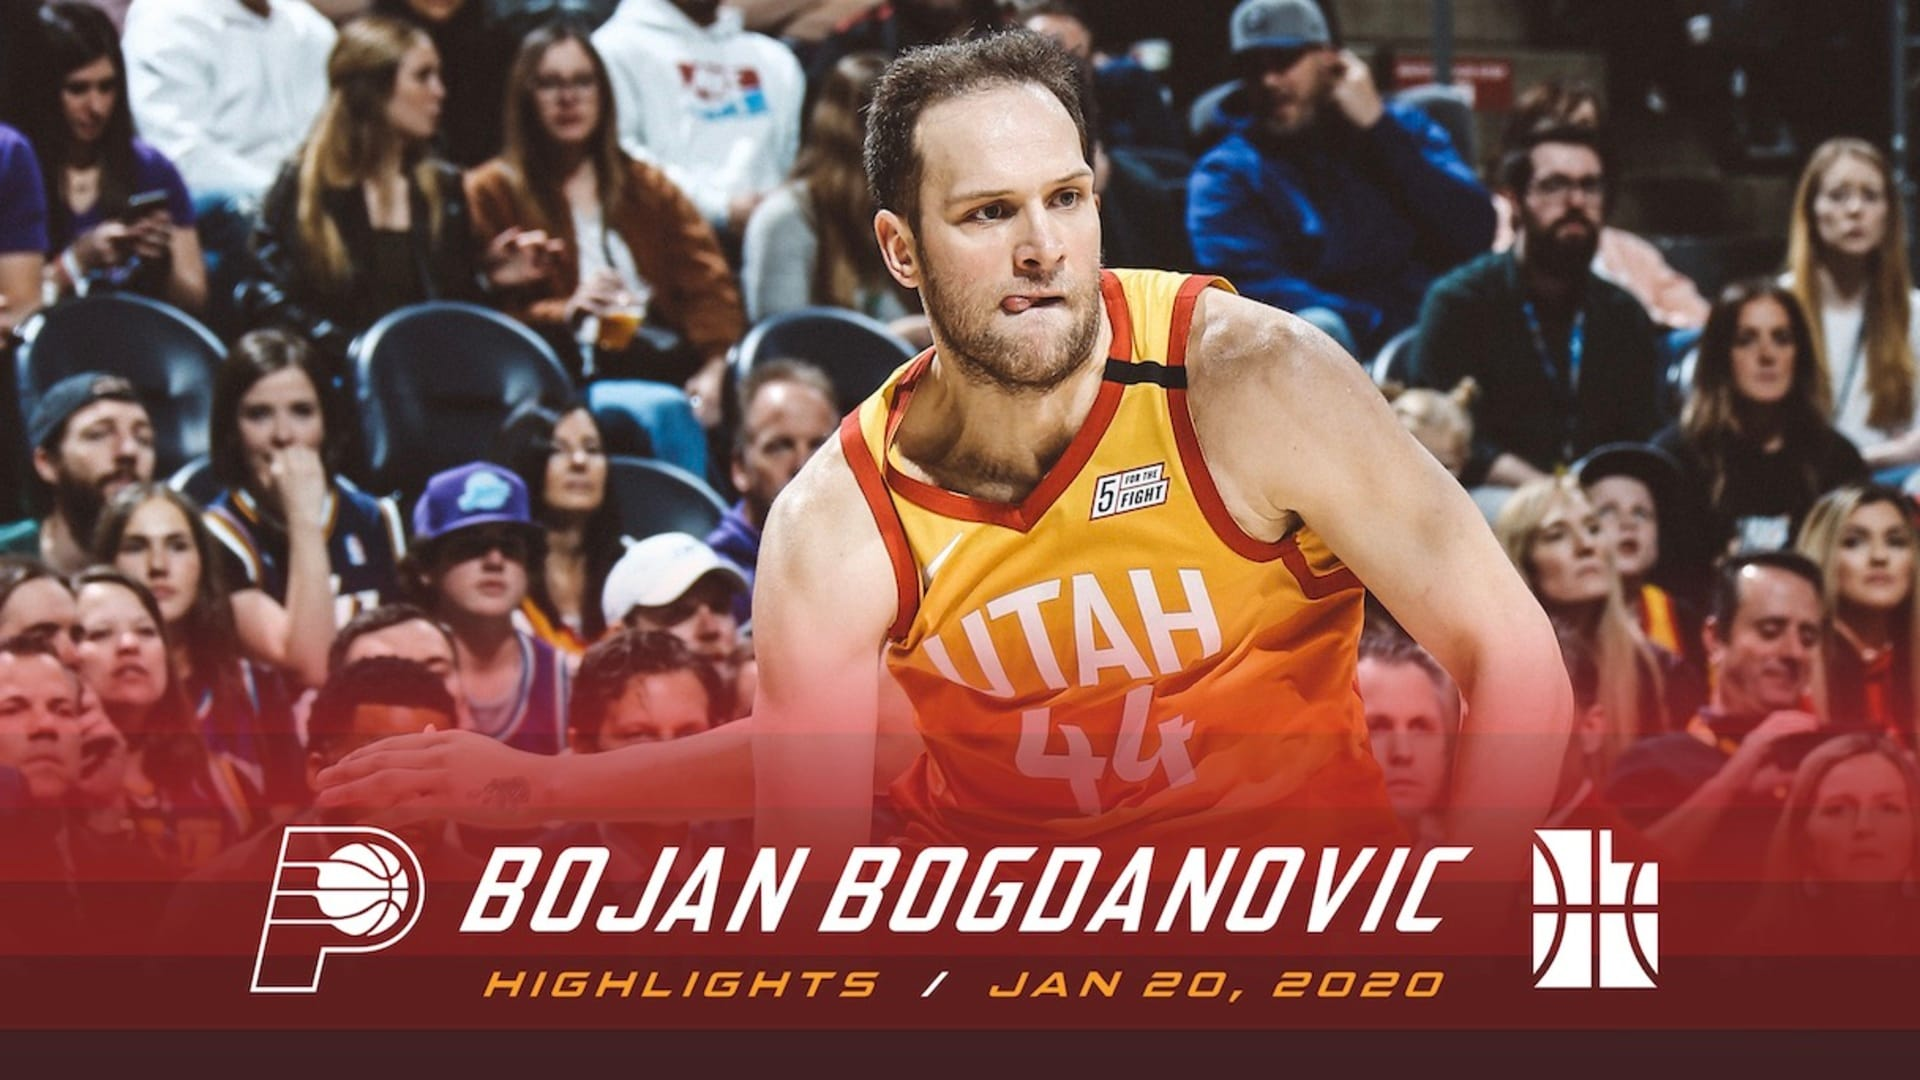 Highlights: Bojan Bogdanovic — 16 points, 4 rebounds